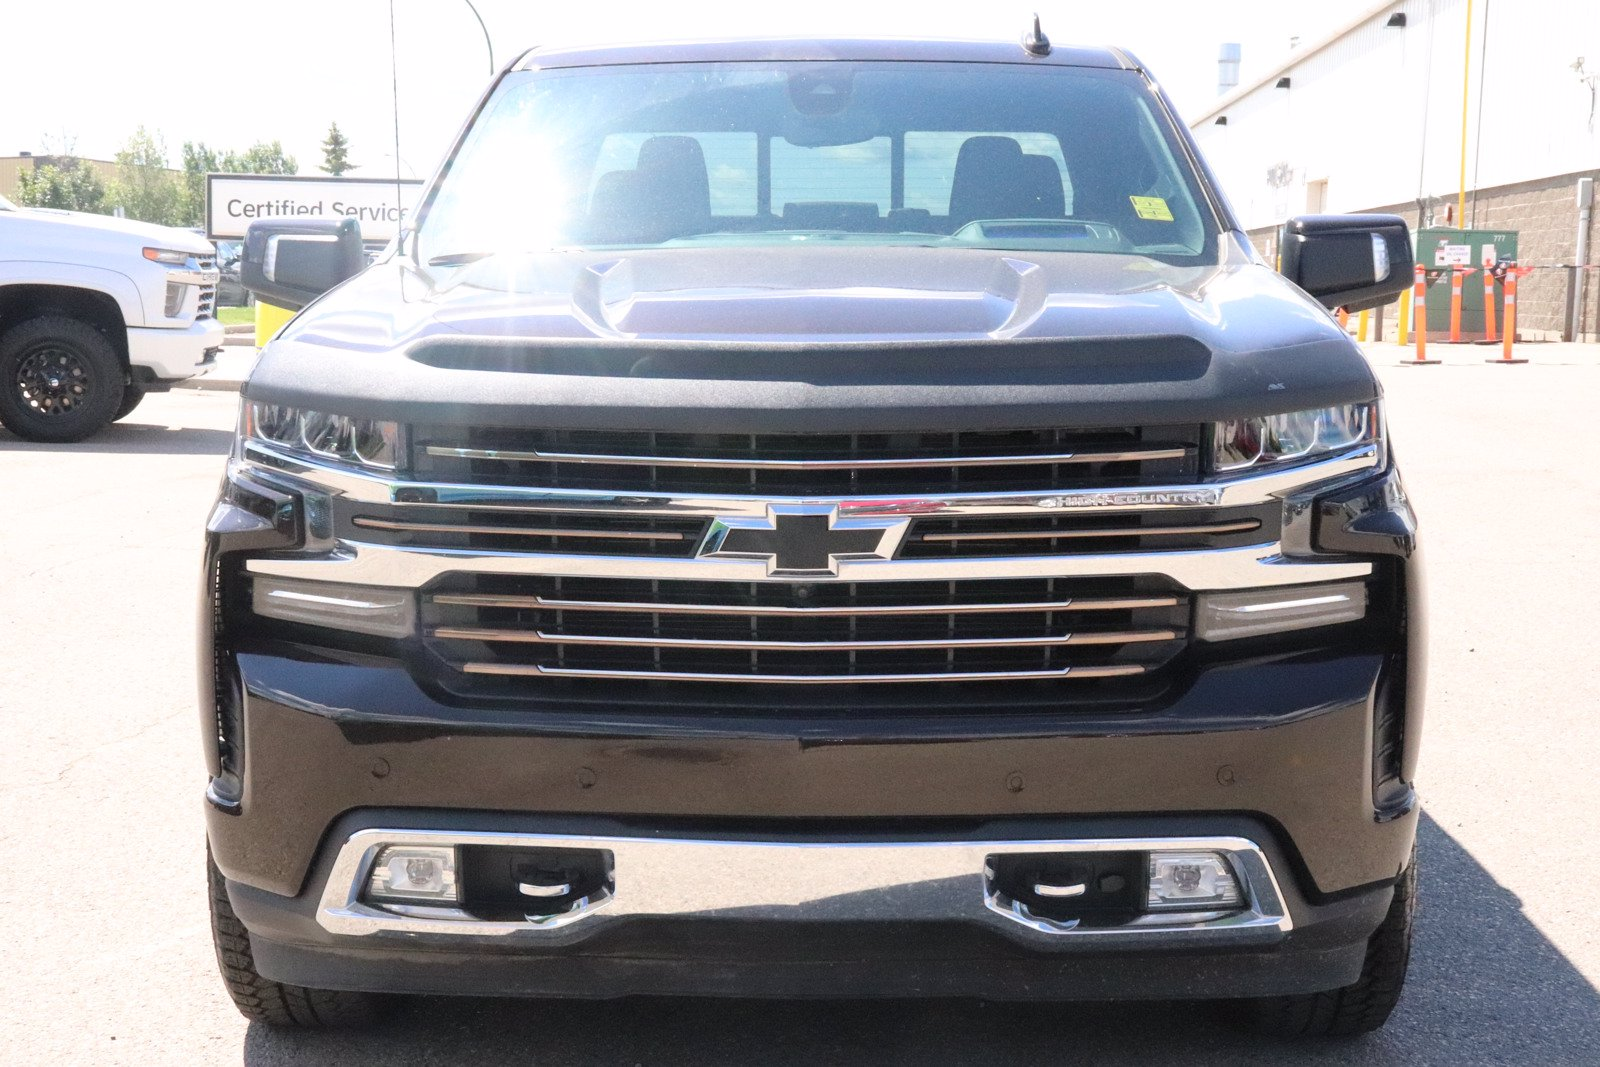 Certified Pre-Owned 2019 Chevrolet Silverado 1500 High Country - Leather, Nav, Sunroof, H.U.D, Pwr Tailgate